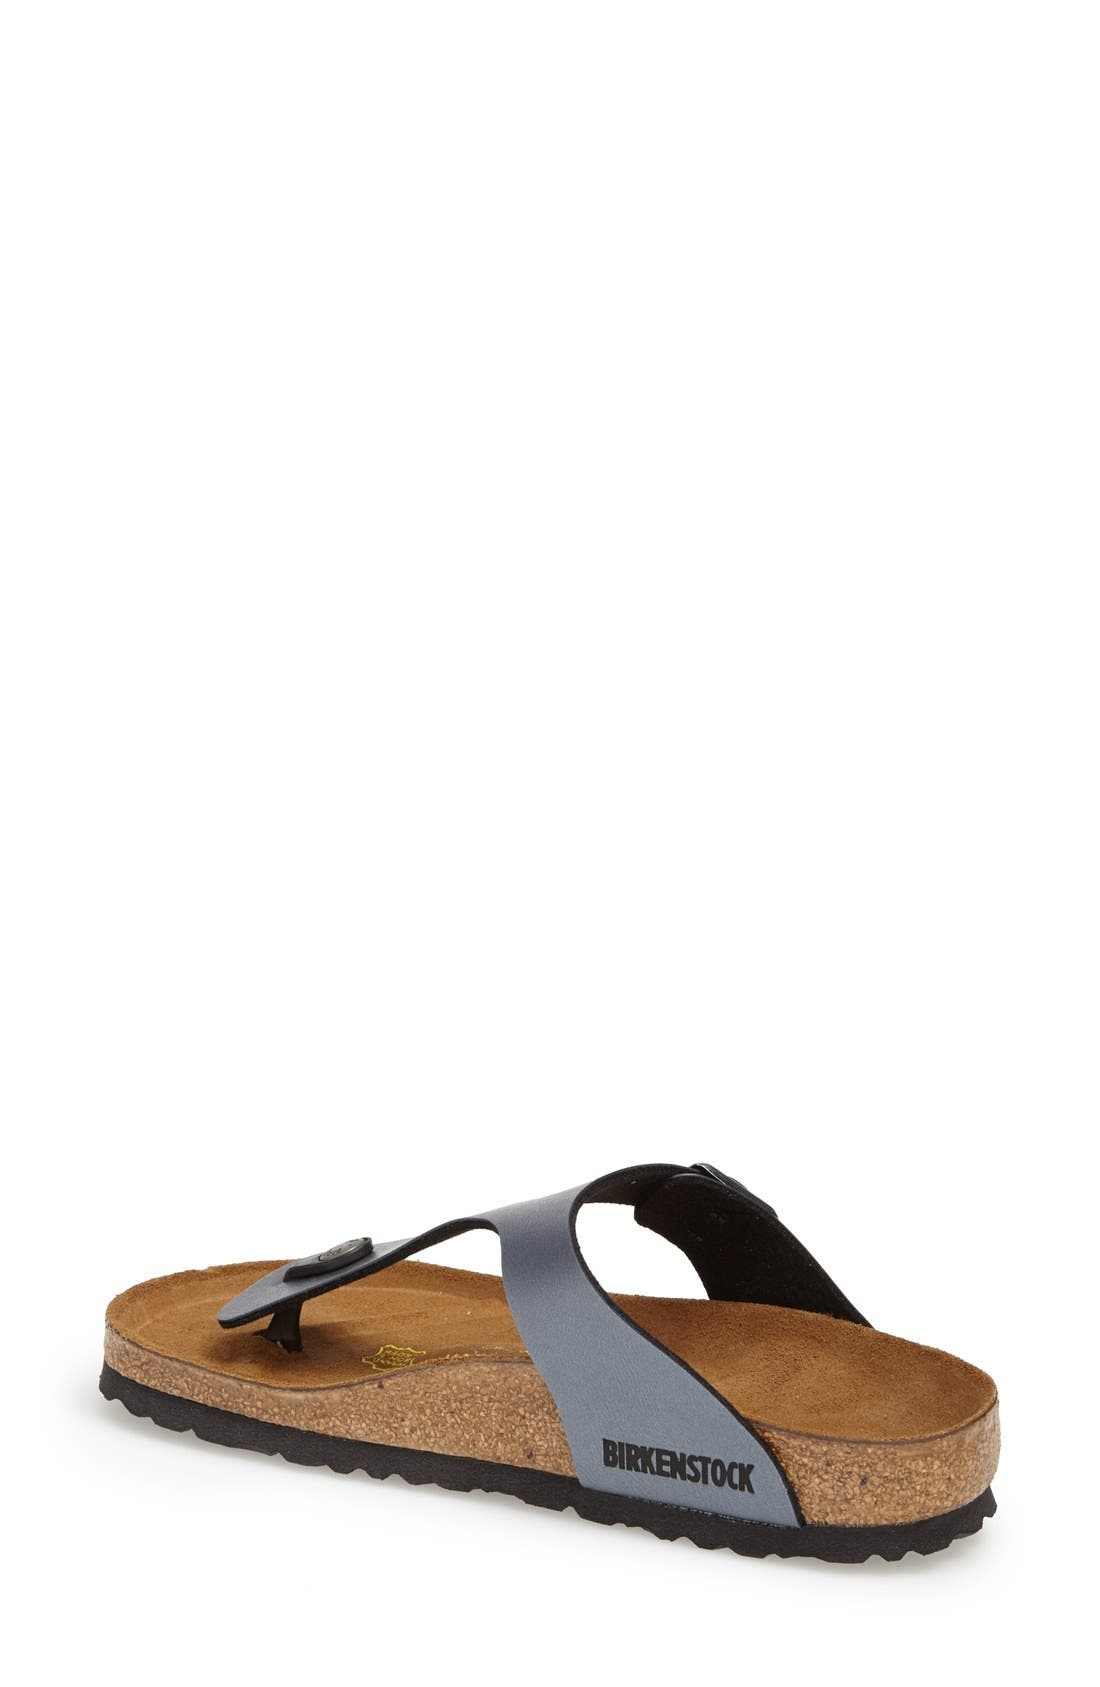 20d7e2679e8 Birkenstock All Women